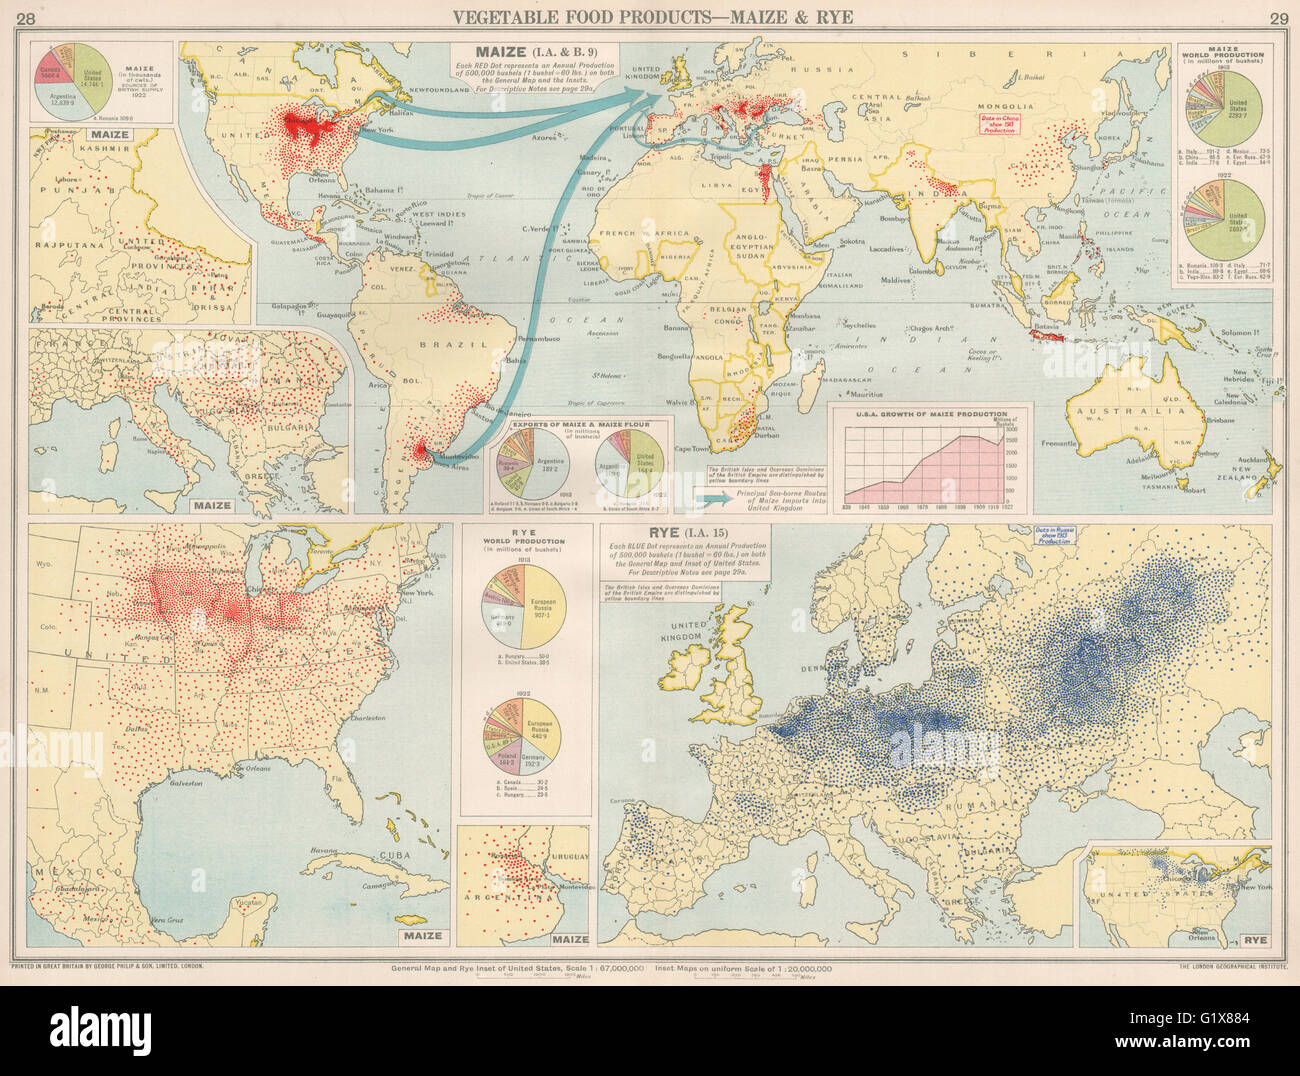 World food production maize rye united states europe 1925 food production maize rye united states europe 1925 vintage map sciox Image collections